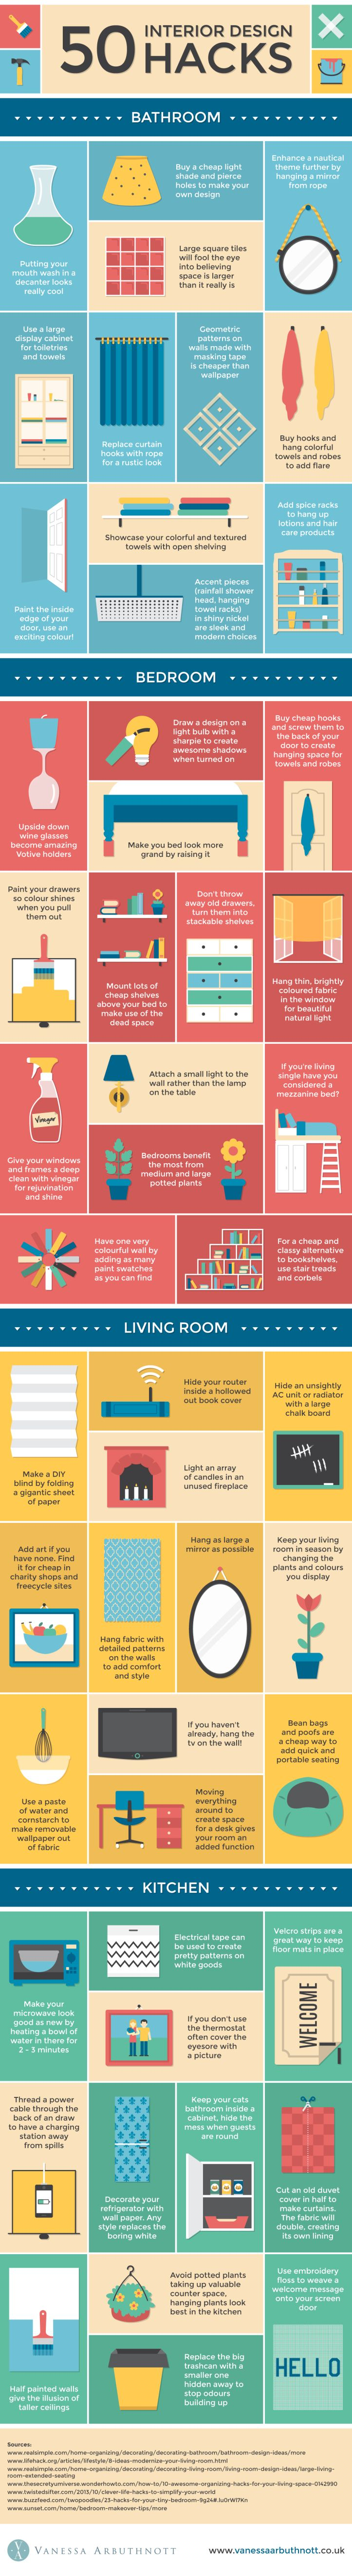 50 interior design hacks infographic - Next Home Interiors